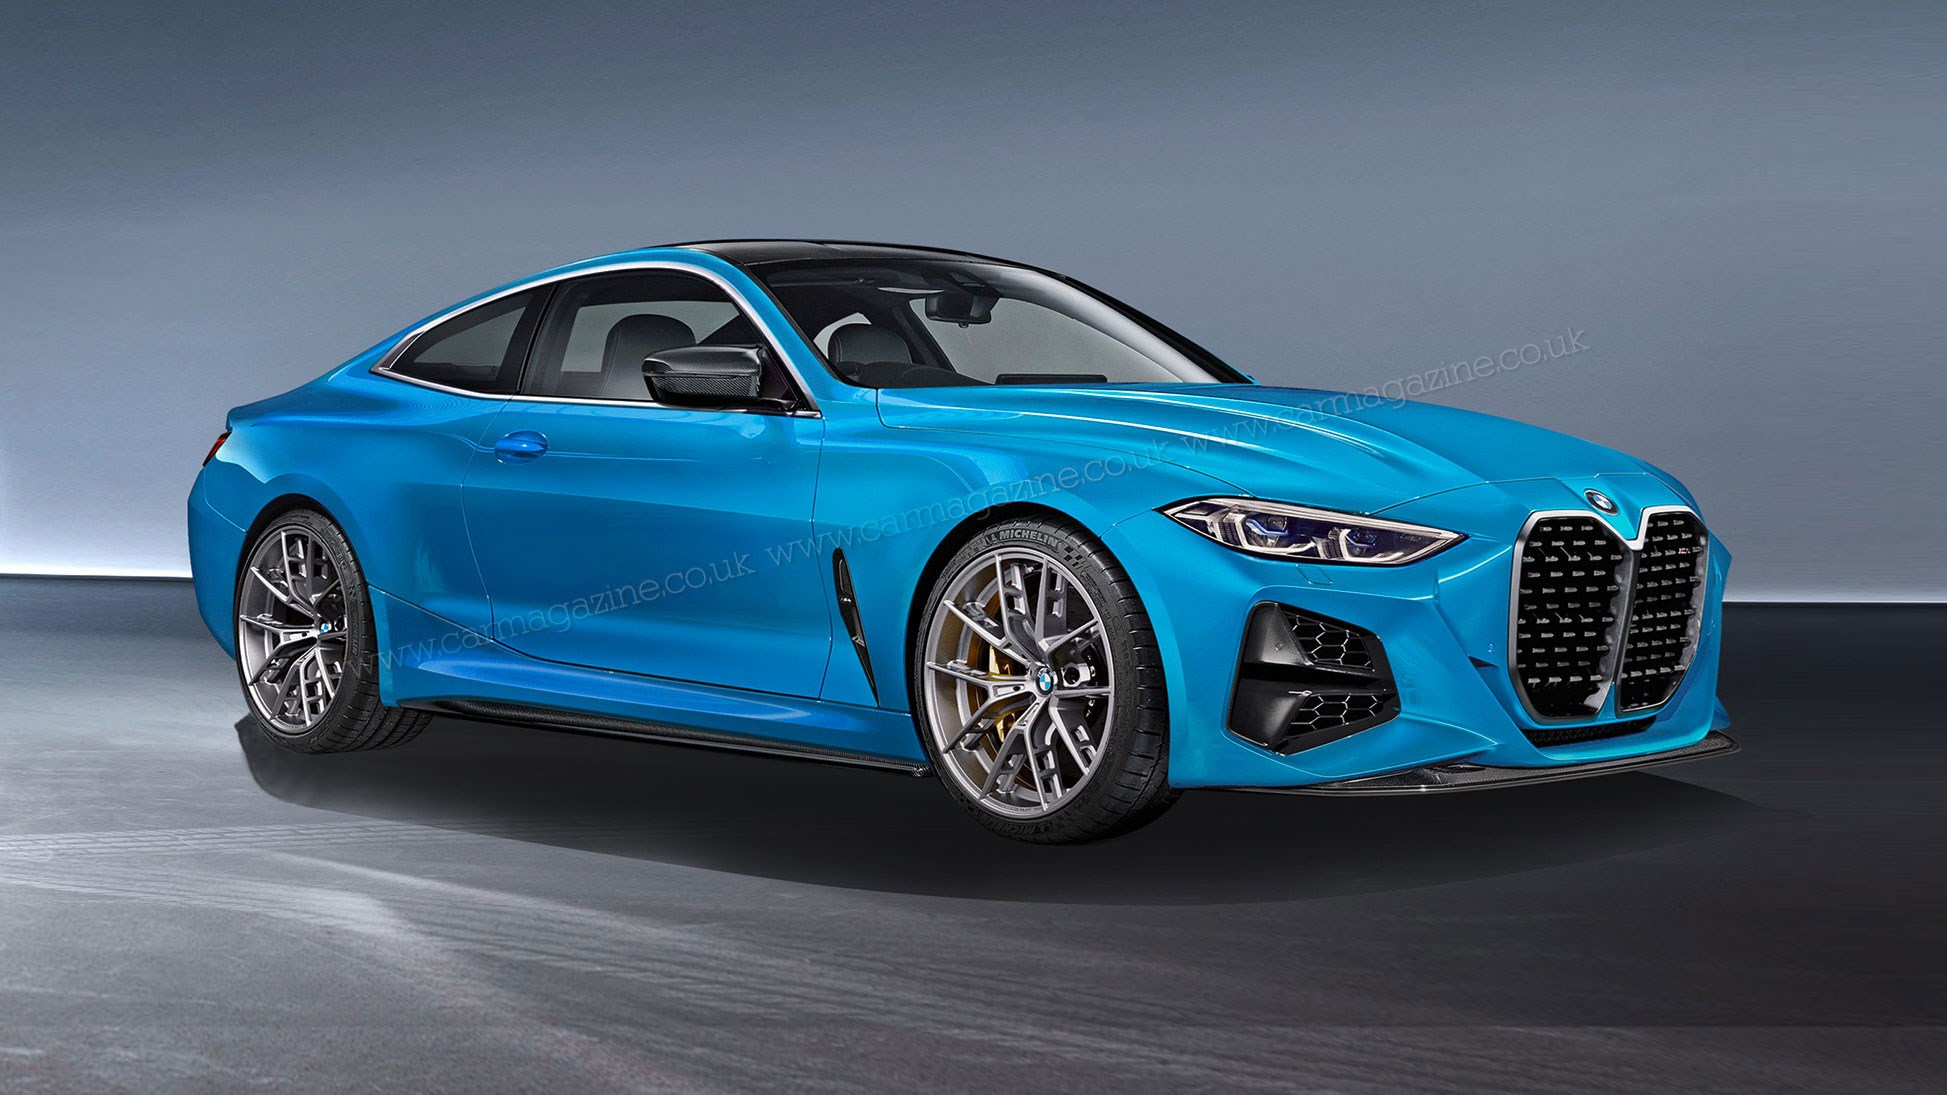 New 2021 BMW M4: Coupe shown in camo | CAR Magazine